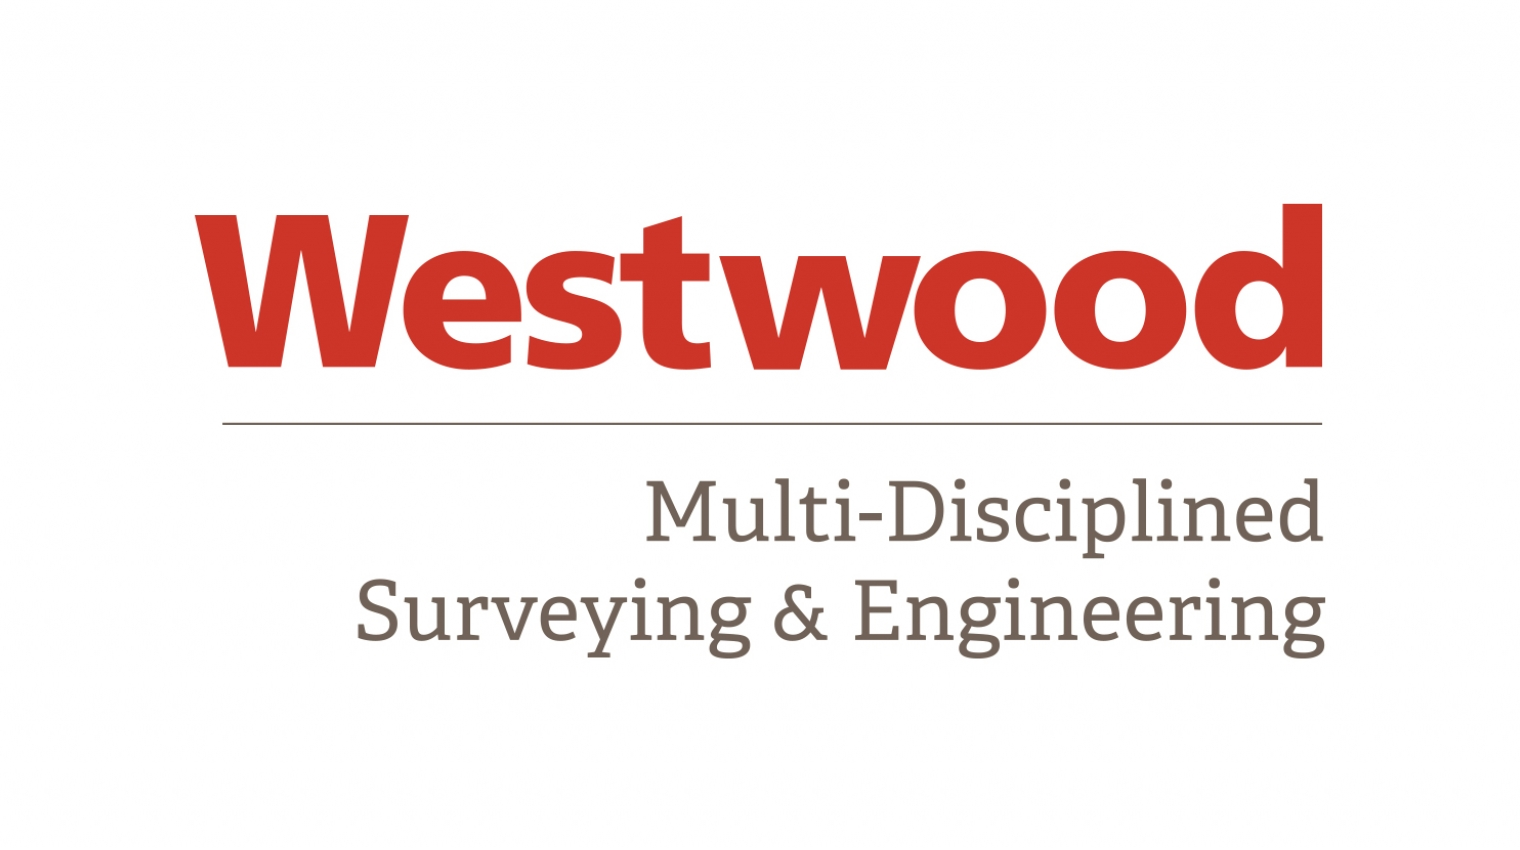 Westwood-Wordmark_SurveyEng-1500x830.jpg